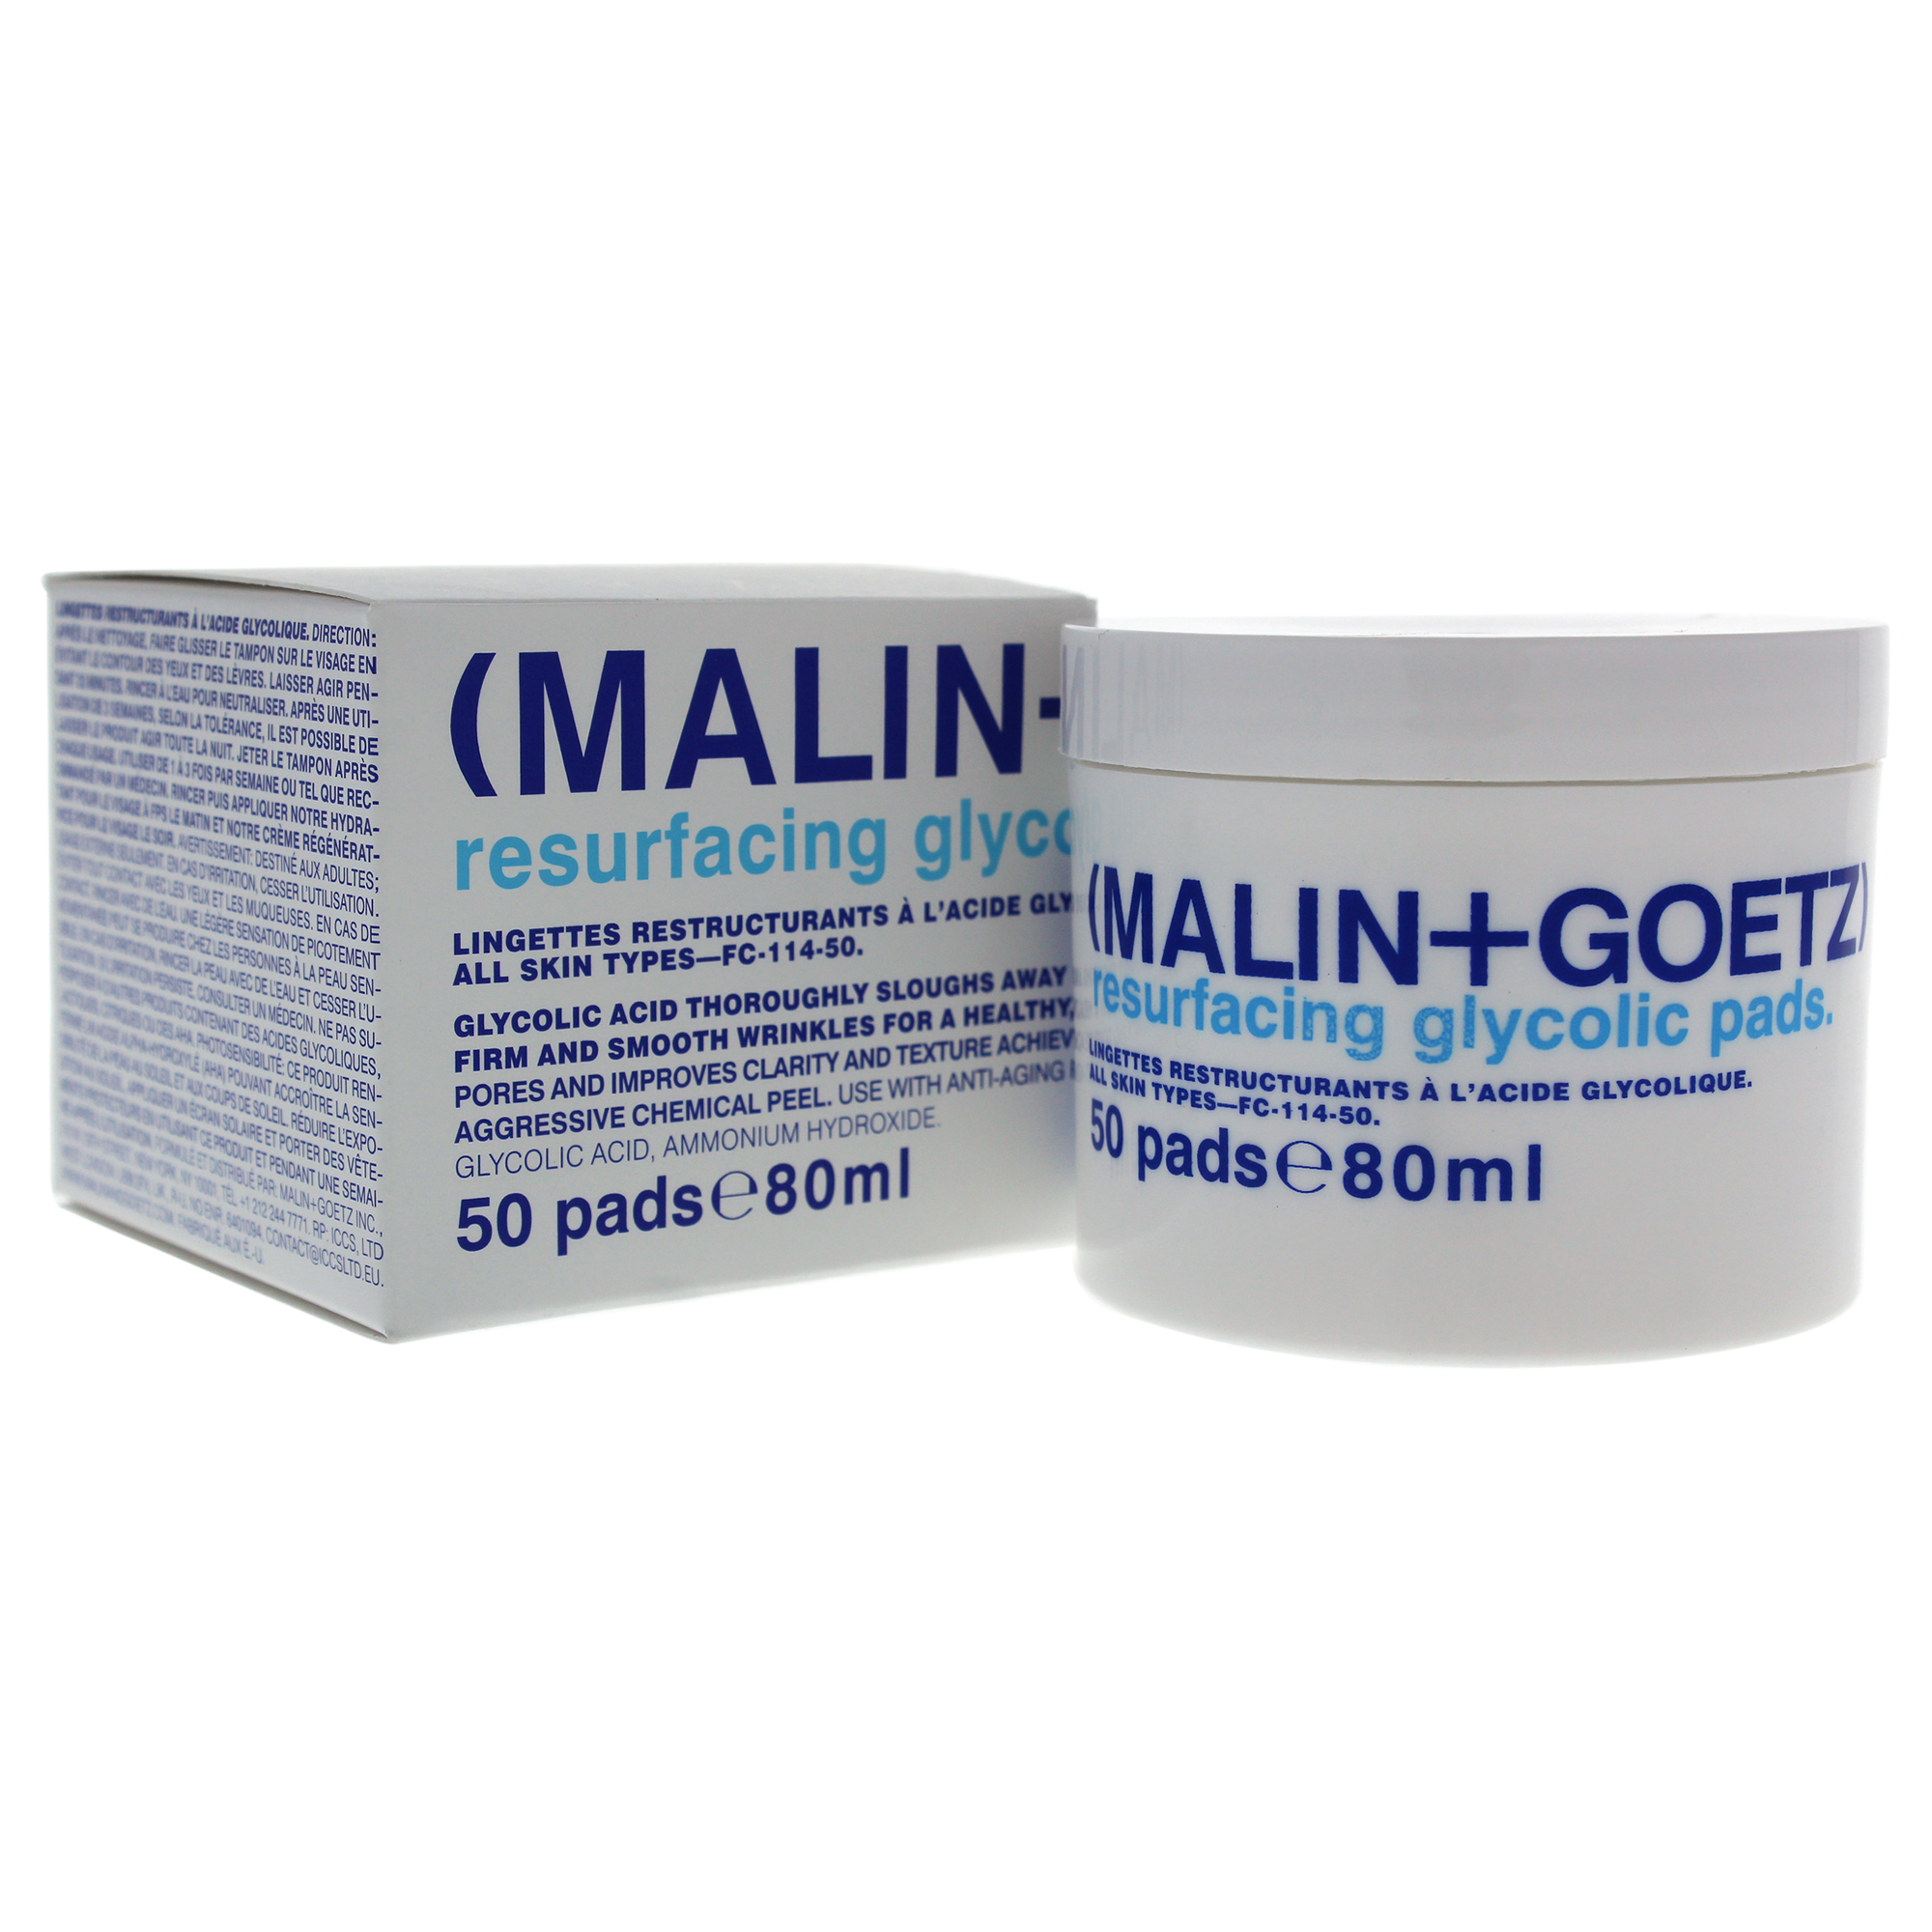 Renover Malin Resurfacing Glycolic Pads By Malin Goetz For Unisex 50 Pads Treatment